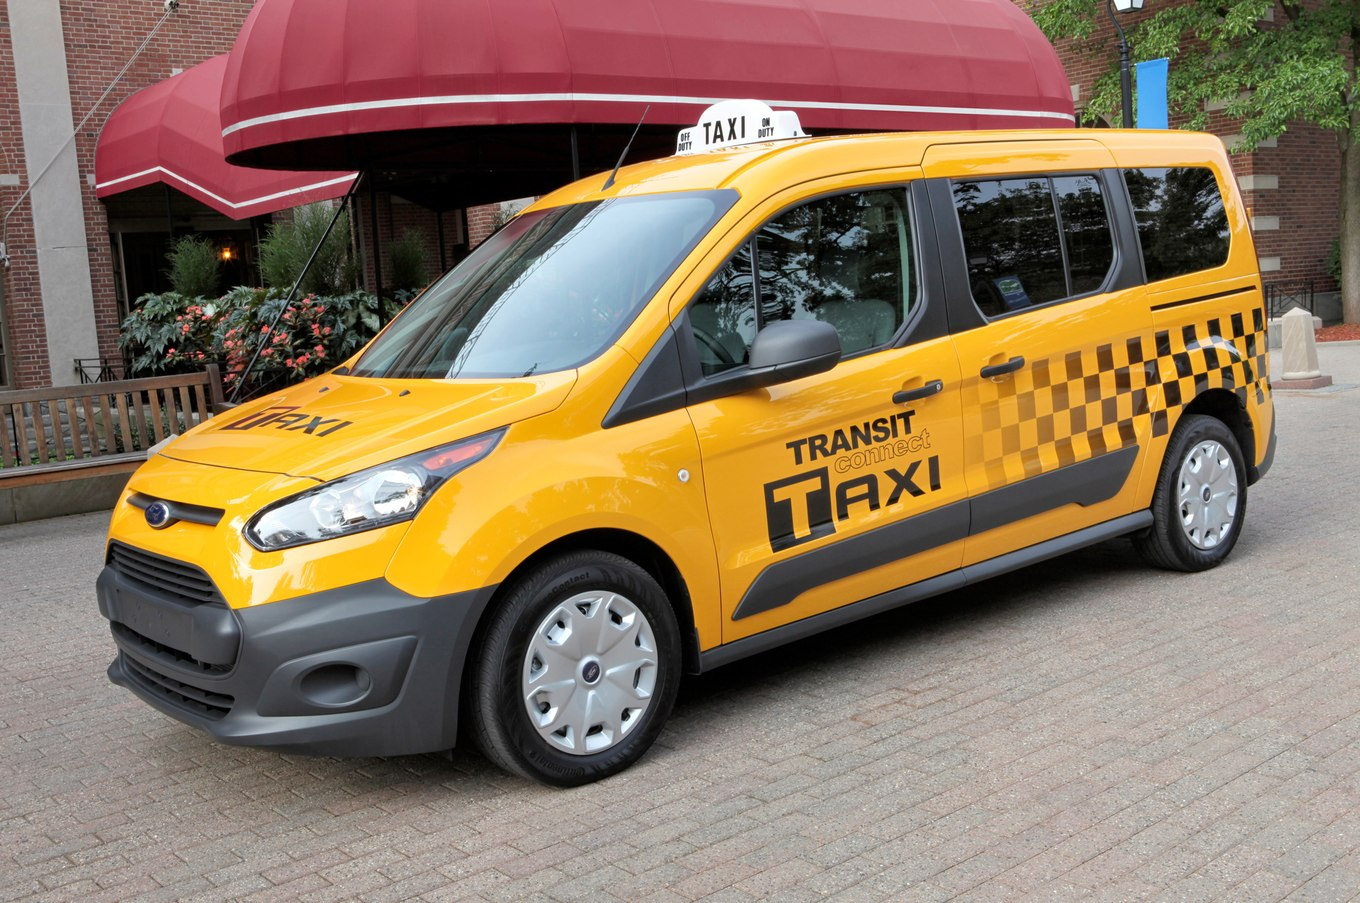 Ford taxi photo - 6